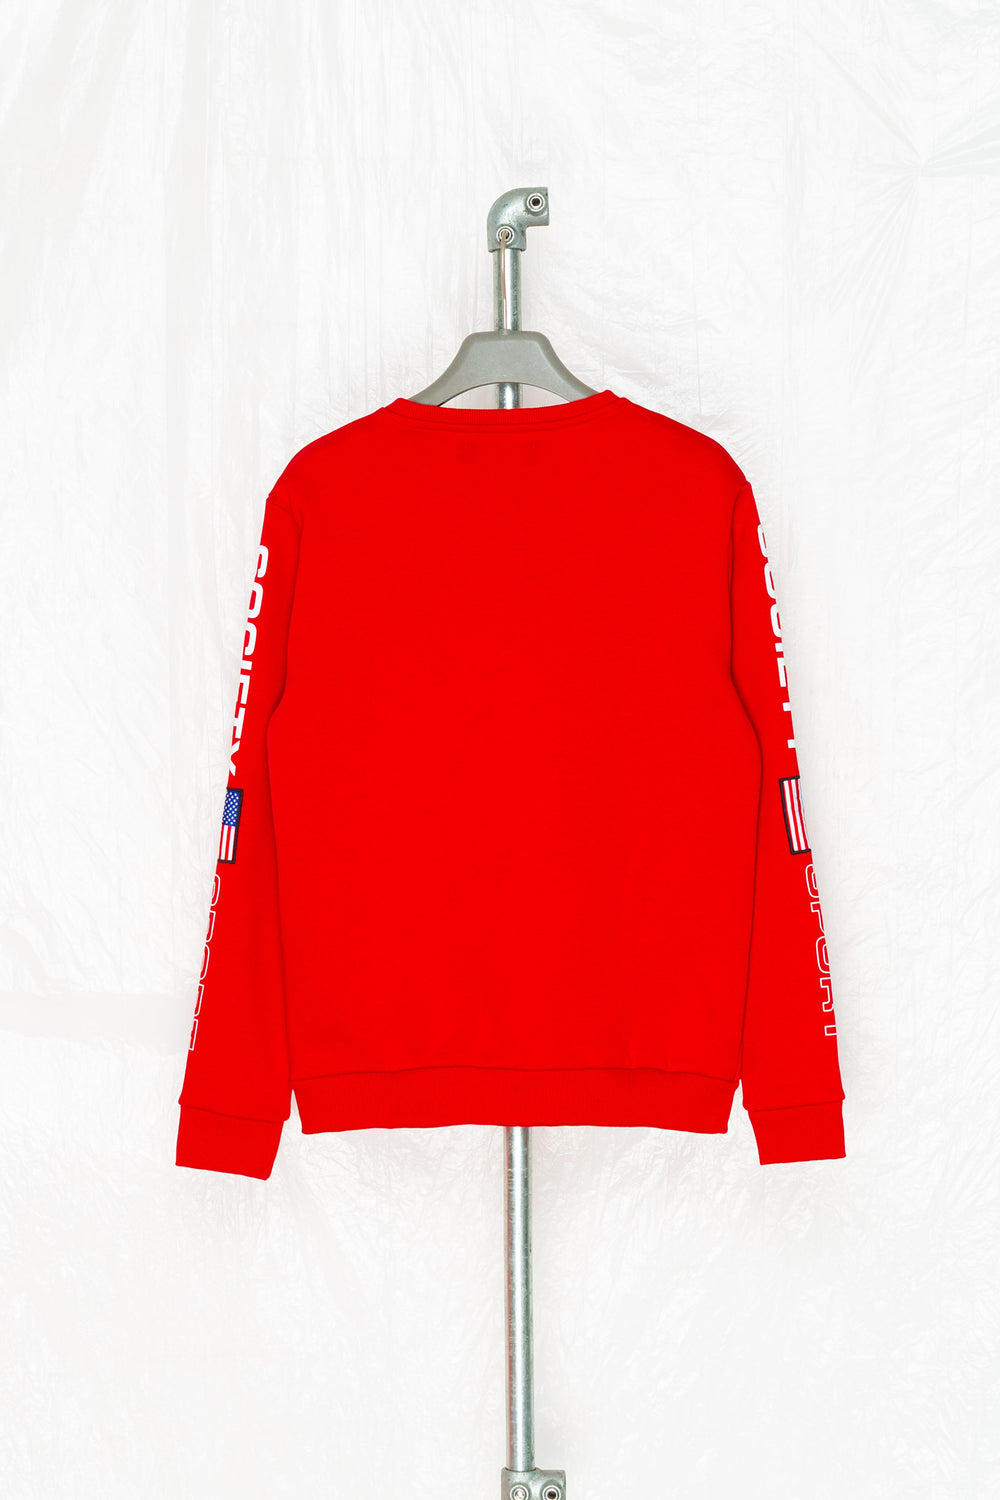 SOCIETY SPORT FLAGS 93 RED CREWNECK